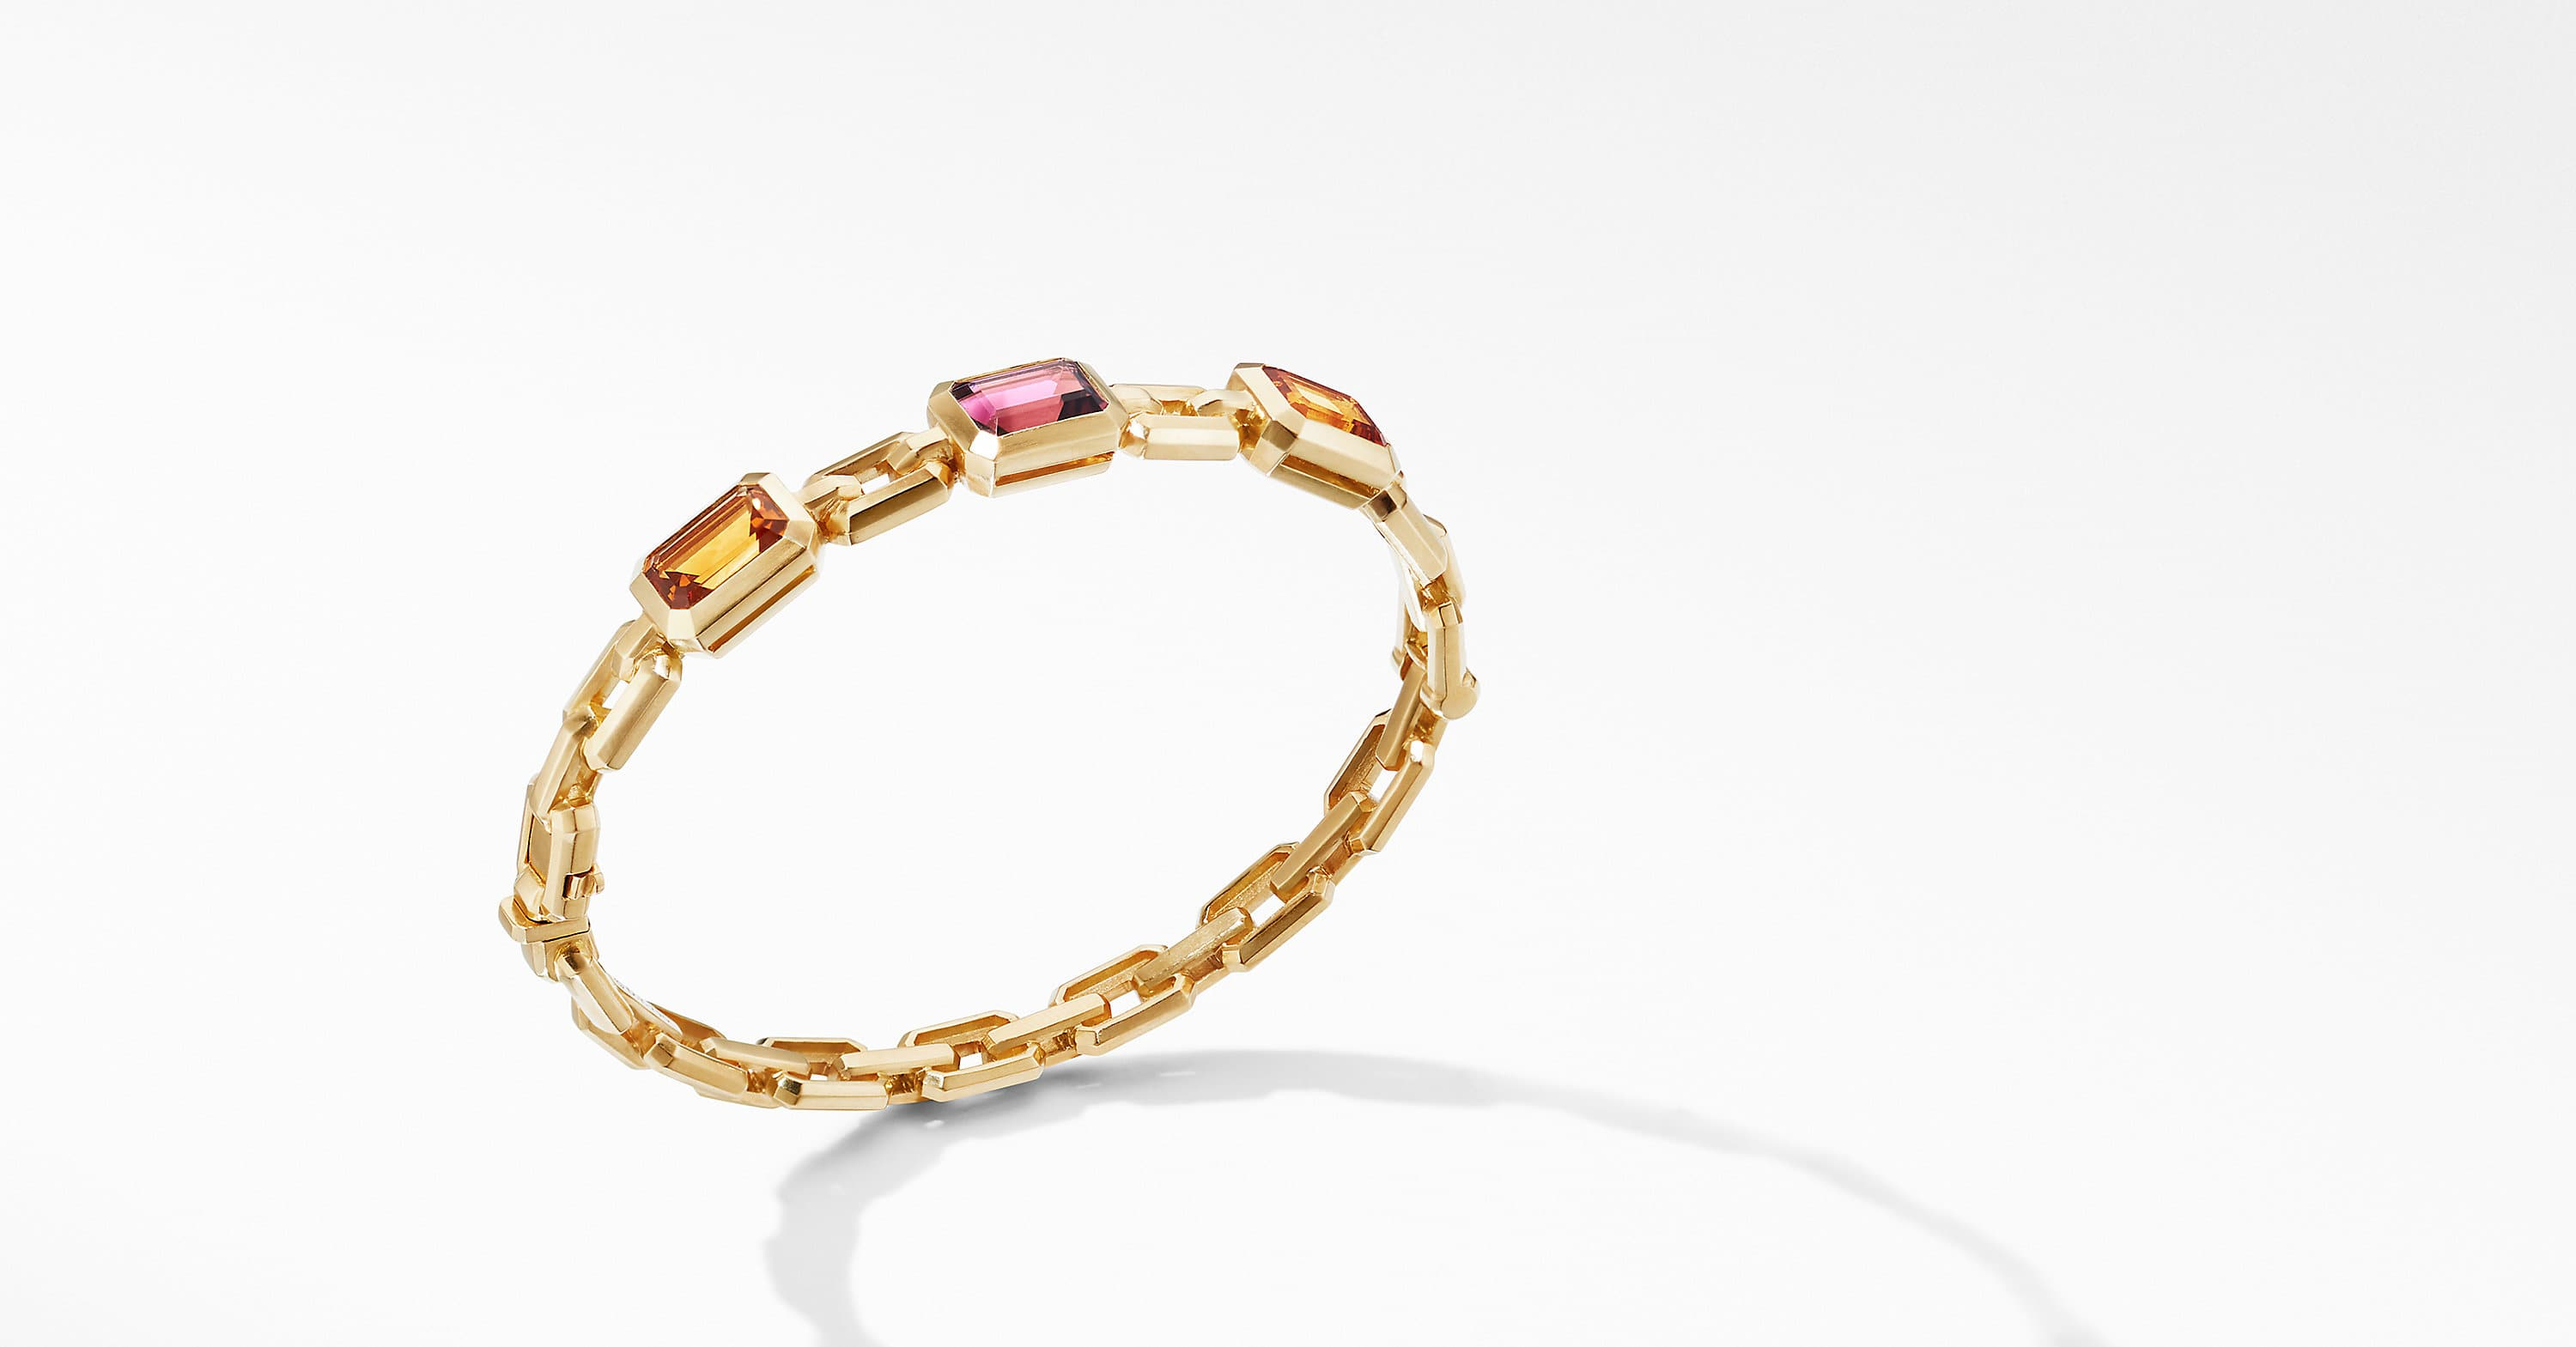 Novella Three Stone Bracelet in 18K Yellow Gold